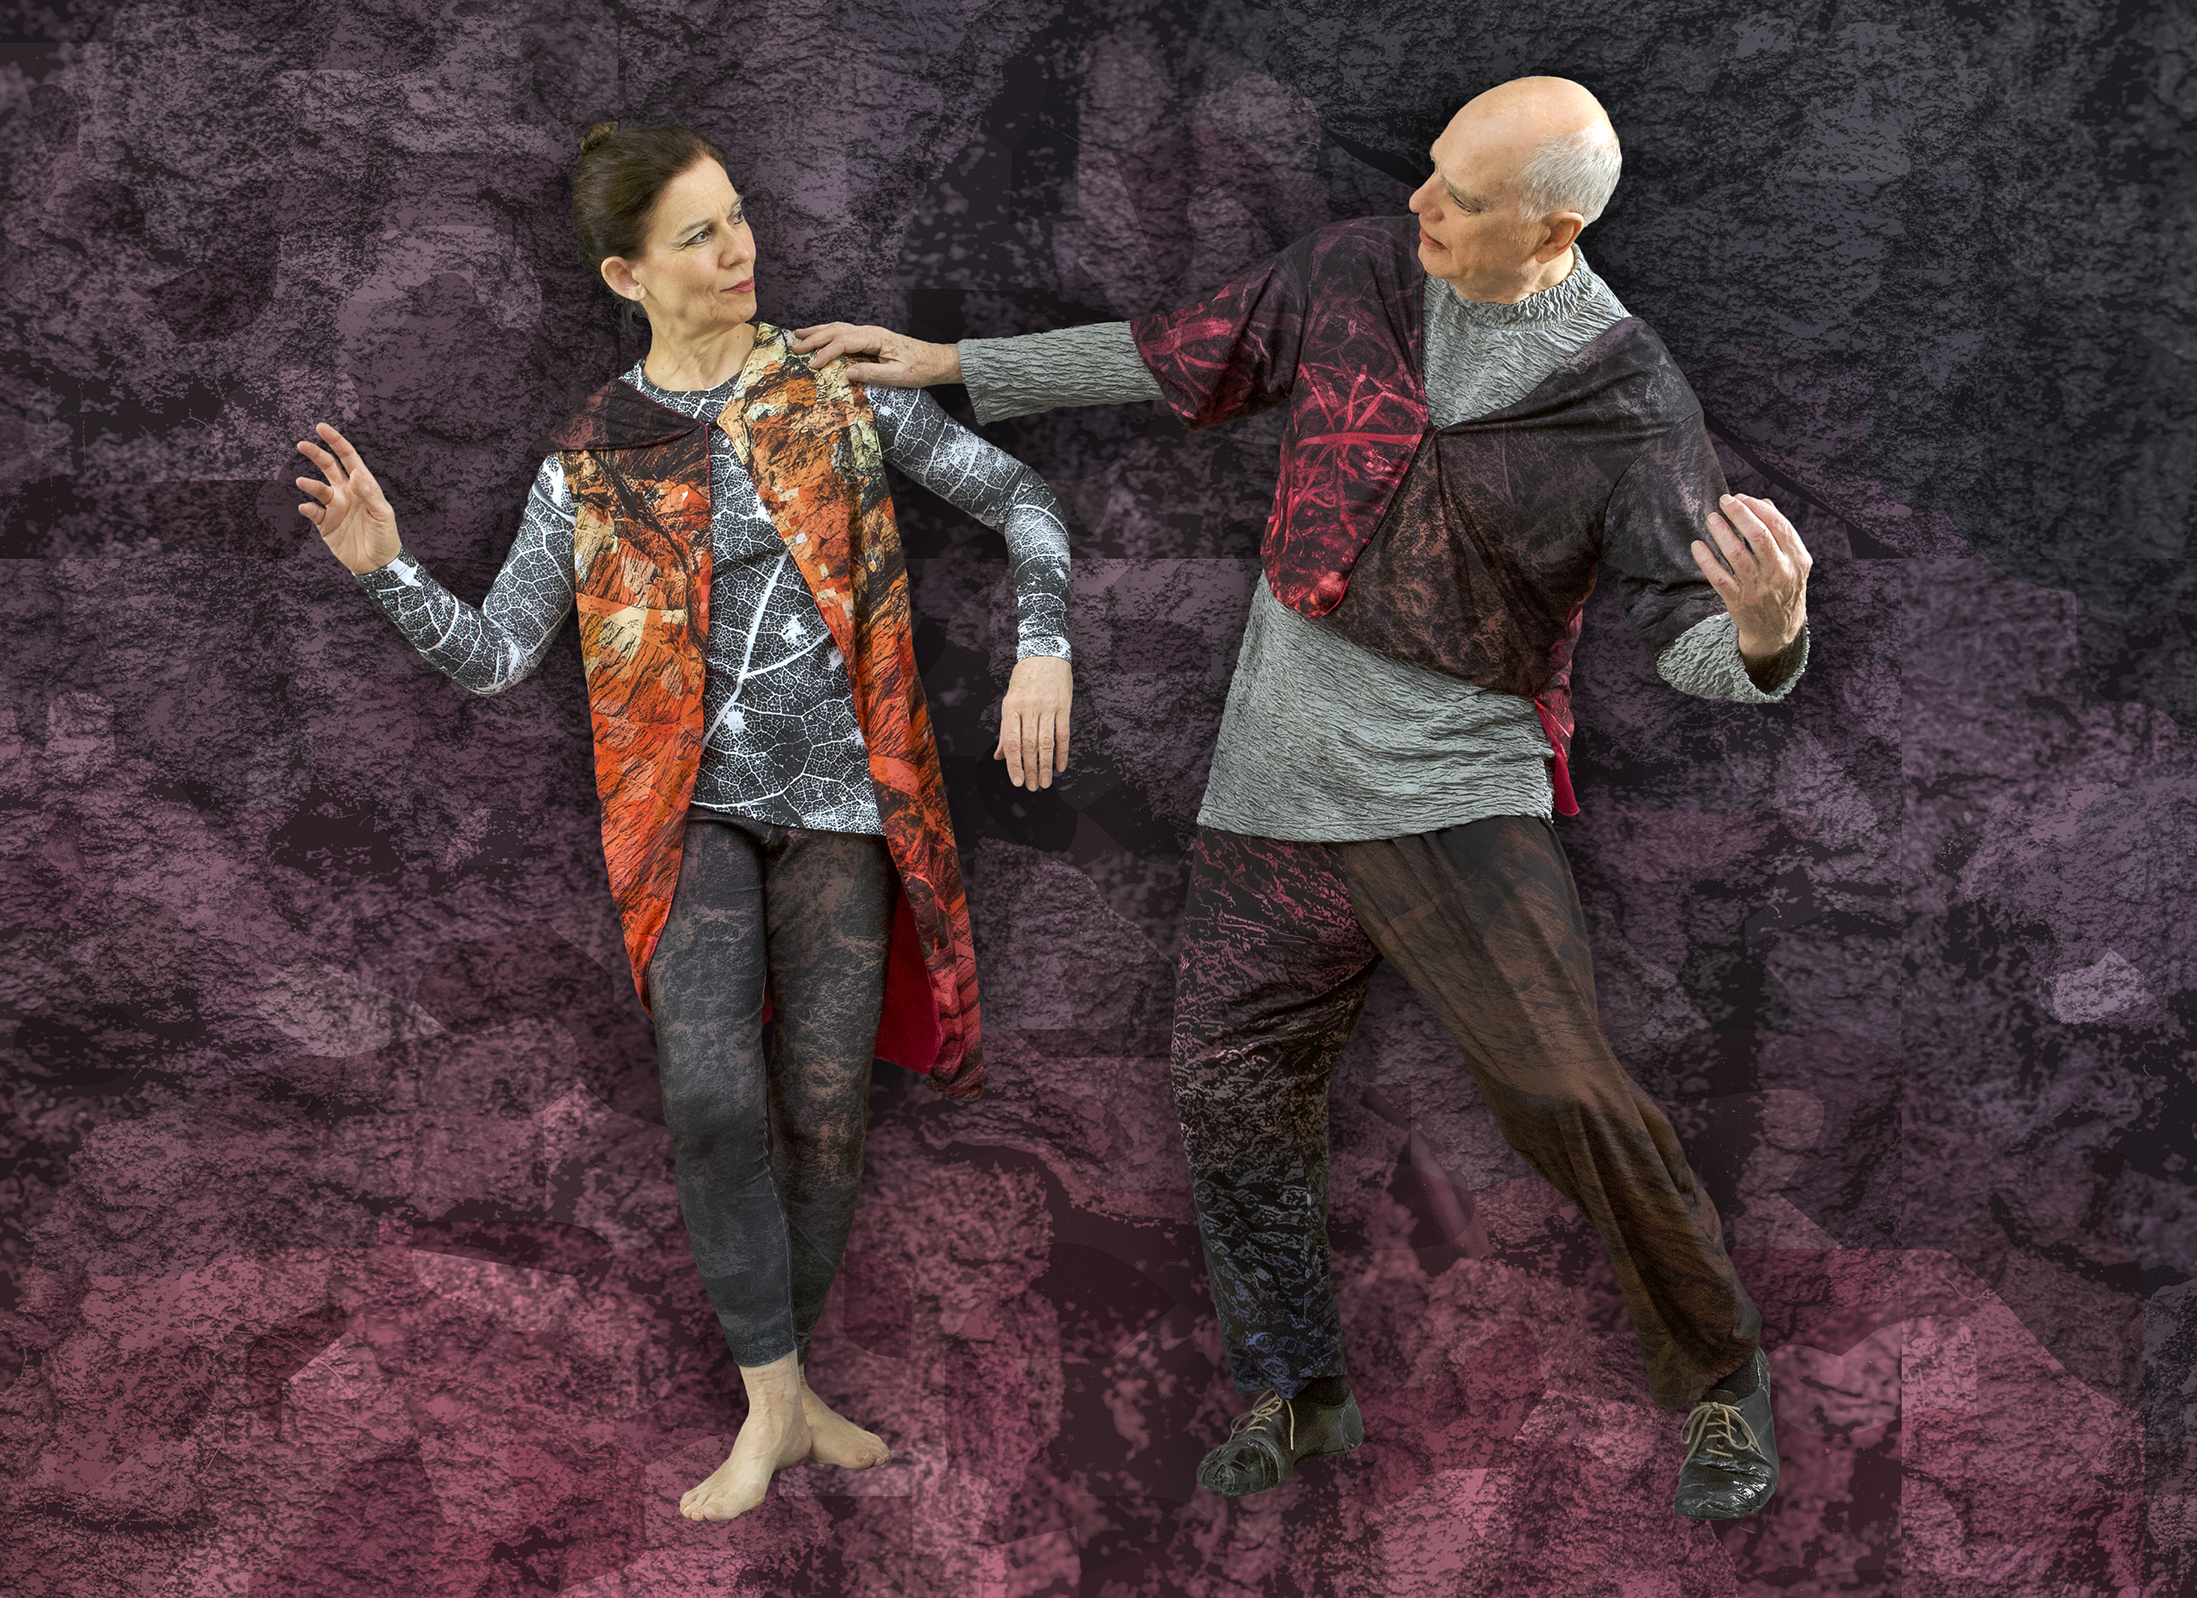 Crag,  2019. Design andytoad; Photo by Andrew Jordan. Dancers Left to Right: Grazia Della-Terza, Douglas Dunn